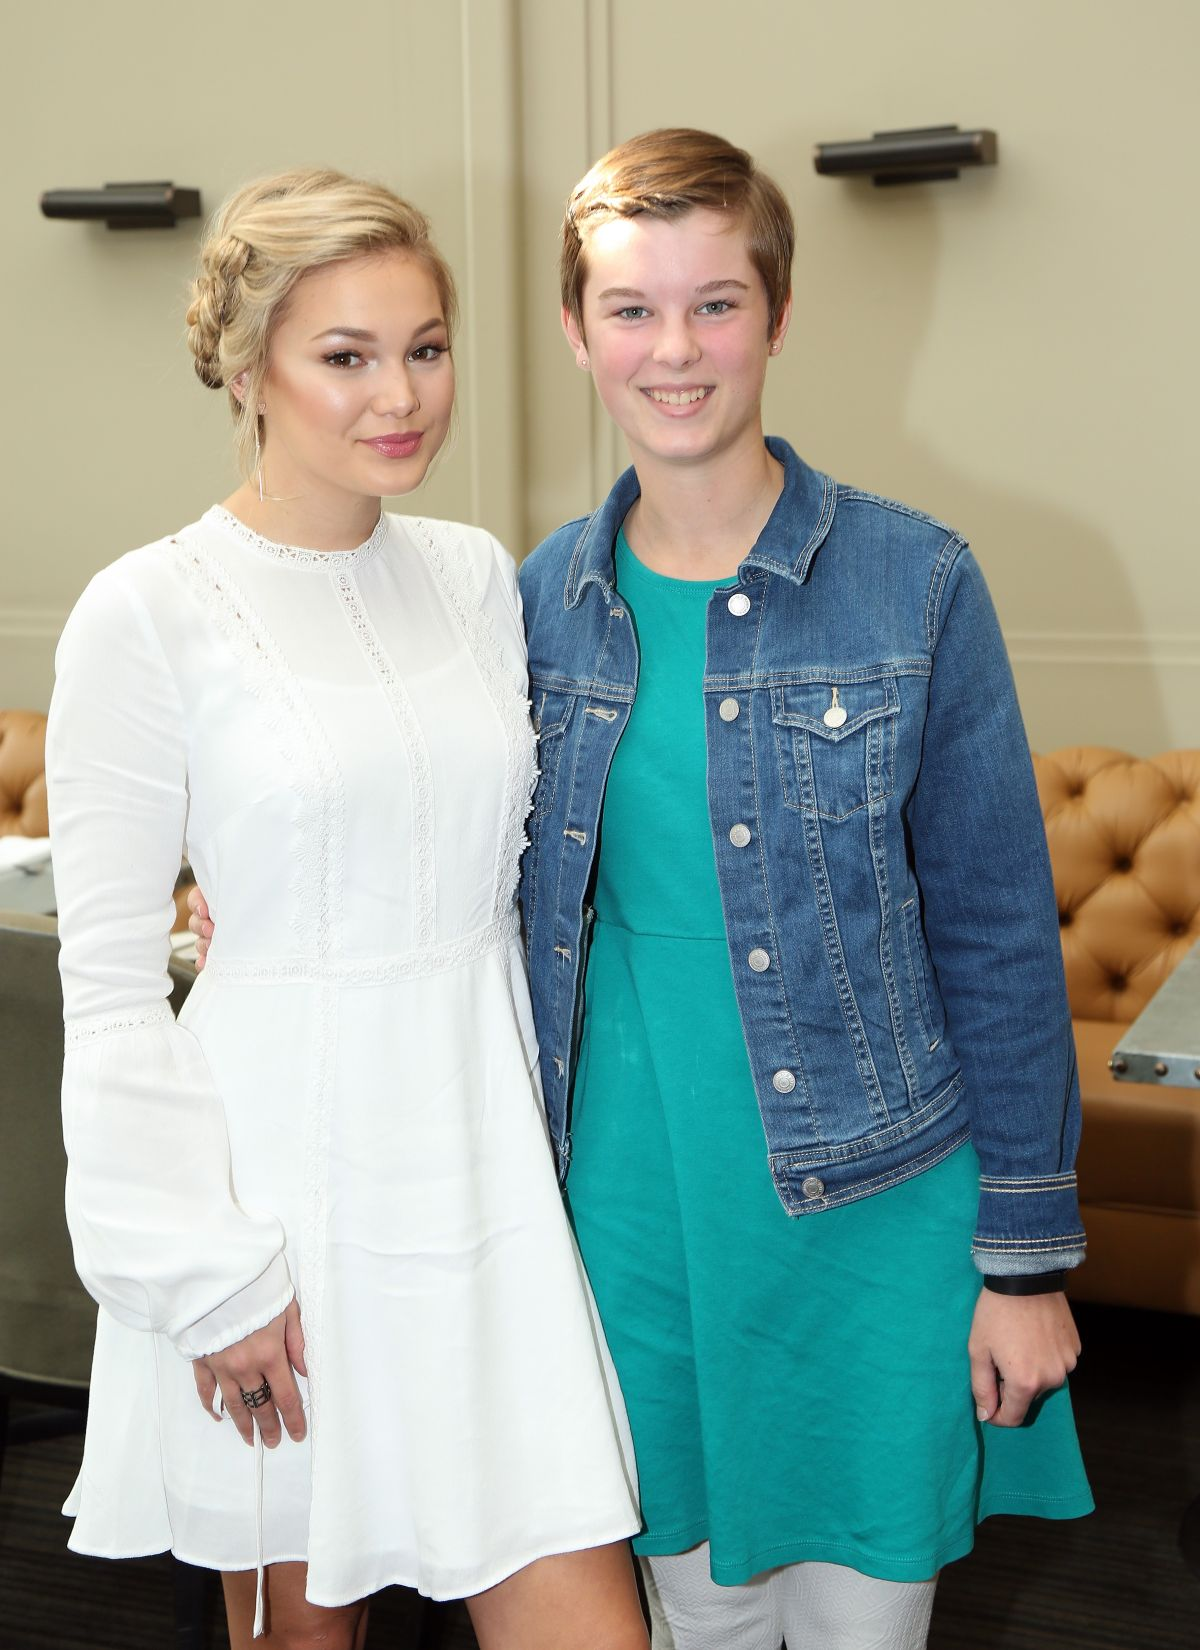 Olivia Holt At St. Jude Children's Research Hospital Luncheon in LA   olivia-holt-at-st.-jude-children-s-research-hospital-luncheon-in-la_5